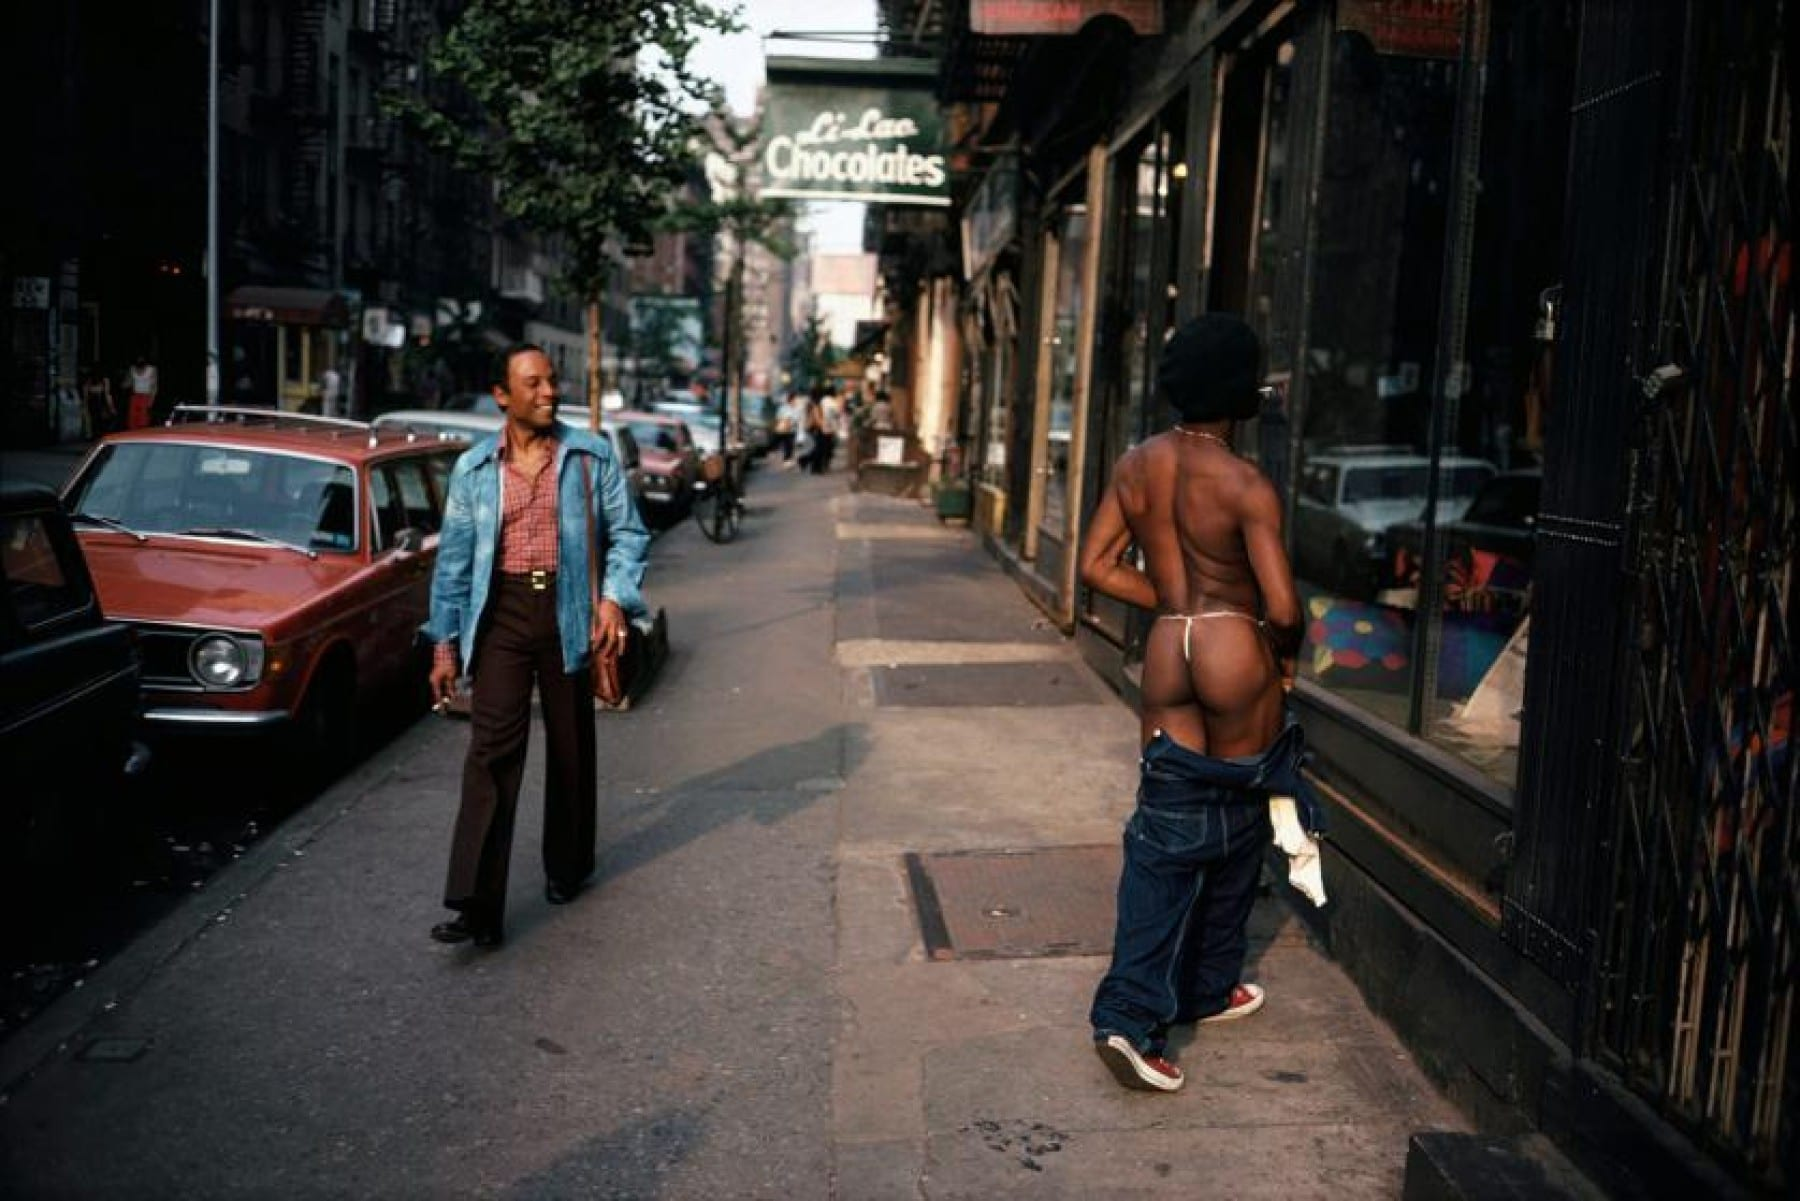 Persons on sidewalk, New York, date unknown Joel Meyerowitz